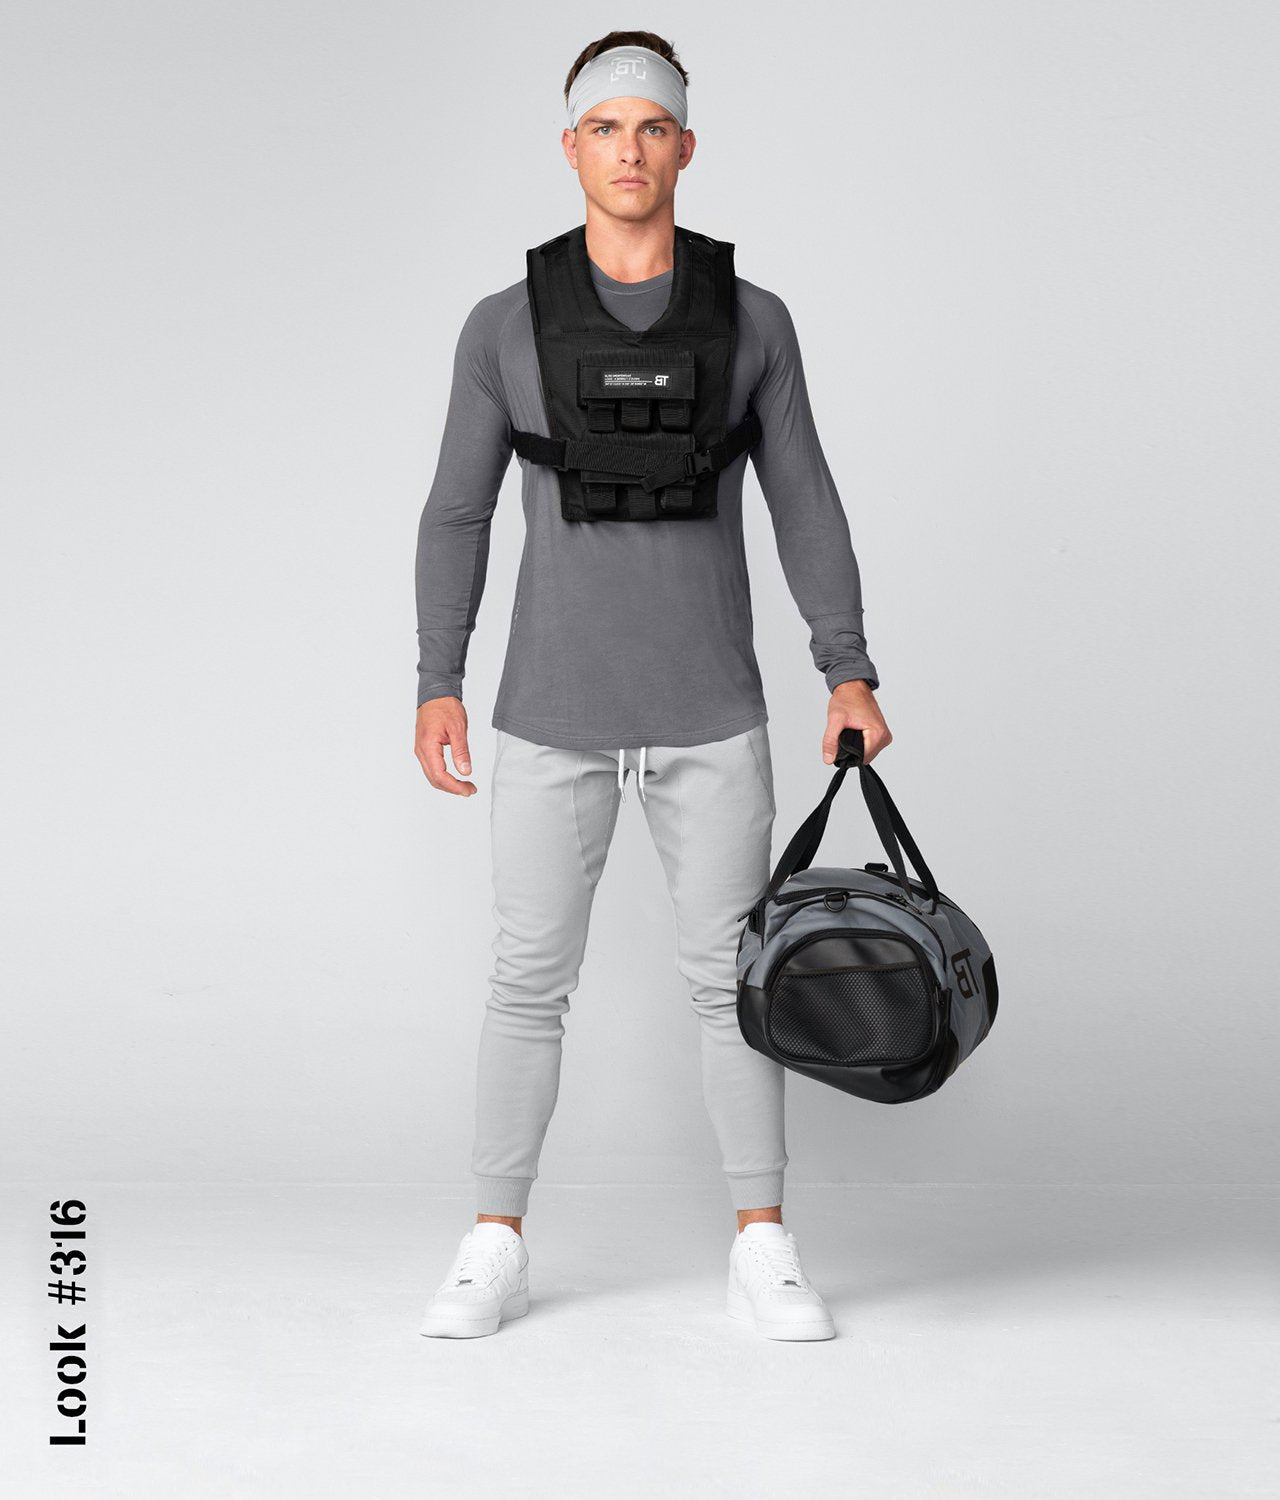 Born Tough United Kingdom Soft & comfortable make Weighted Vest